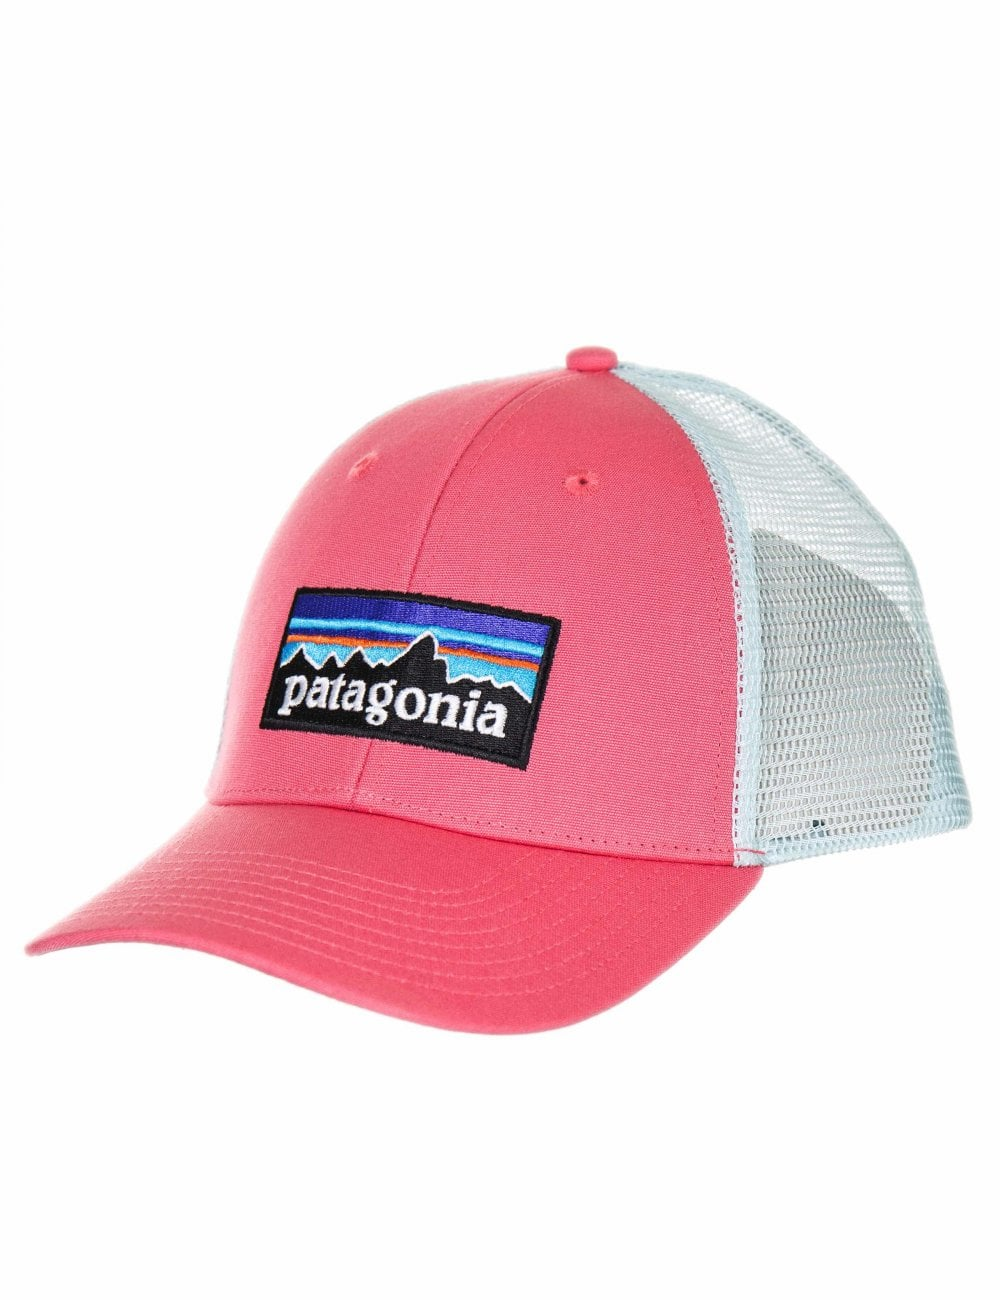 fc737a3e Patagonia P-6 Logo LoPro Trucker Hat - Sticker Pink - Accessories ...